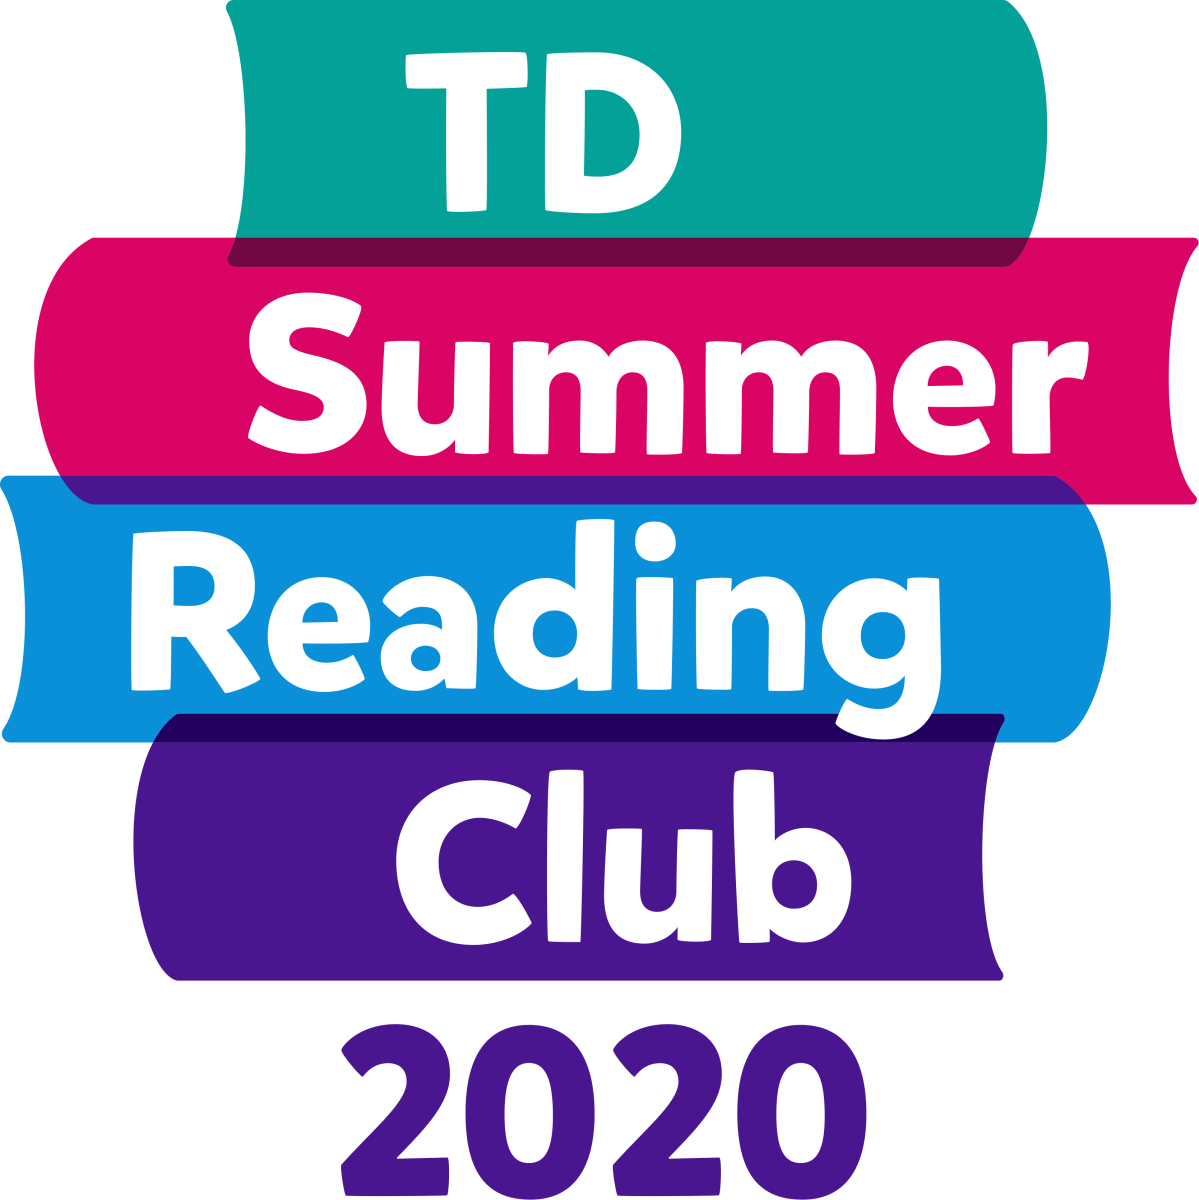 TD Summer Reading Club 2020 logo